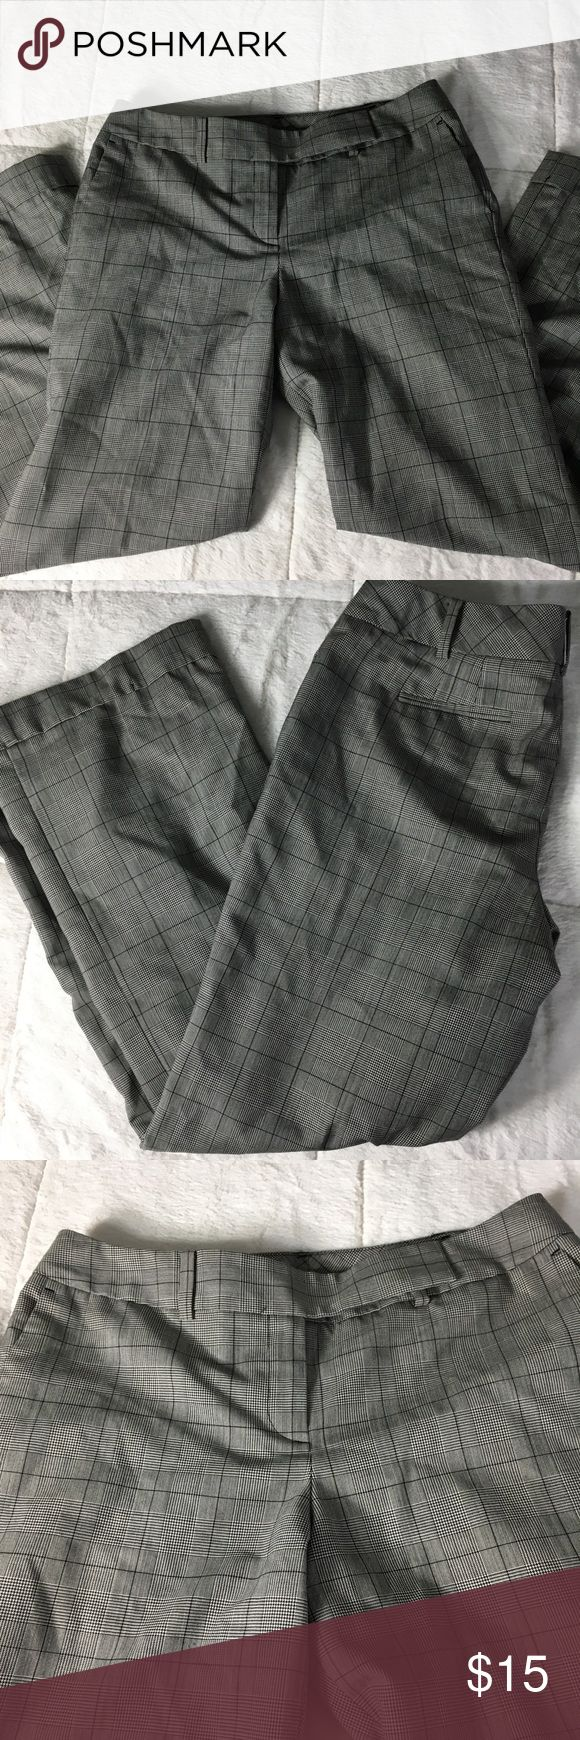 Ann Taylor Signature Fit B&W Plaid Cuffed Pant 10P Super smart career pants, black & white plaid- looks grayish from far away. Says it sits lower on waist. Wide, cuffed legs like traditional classy dress pants. 10 Petite, 10P Ann Taylor Pants Trousers